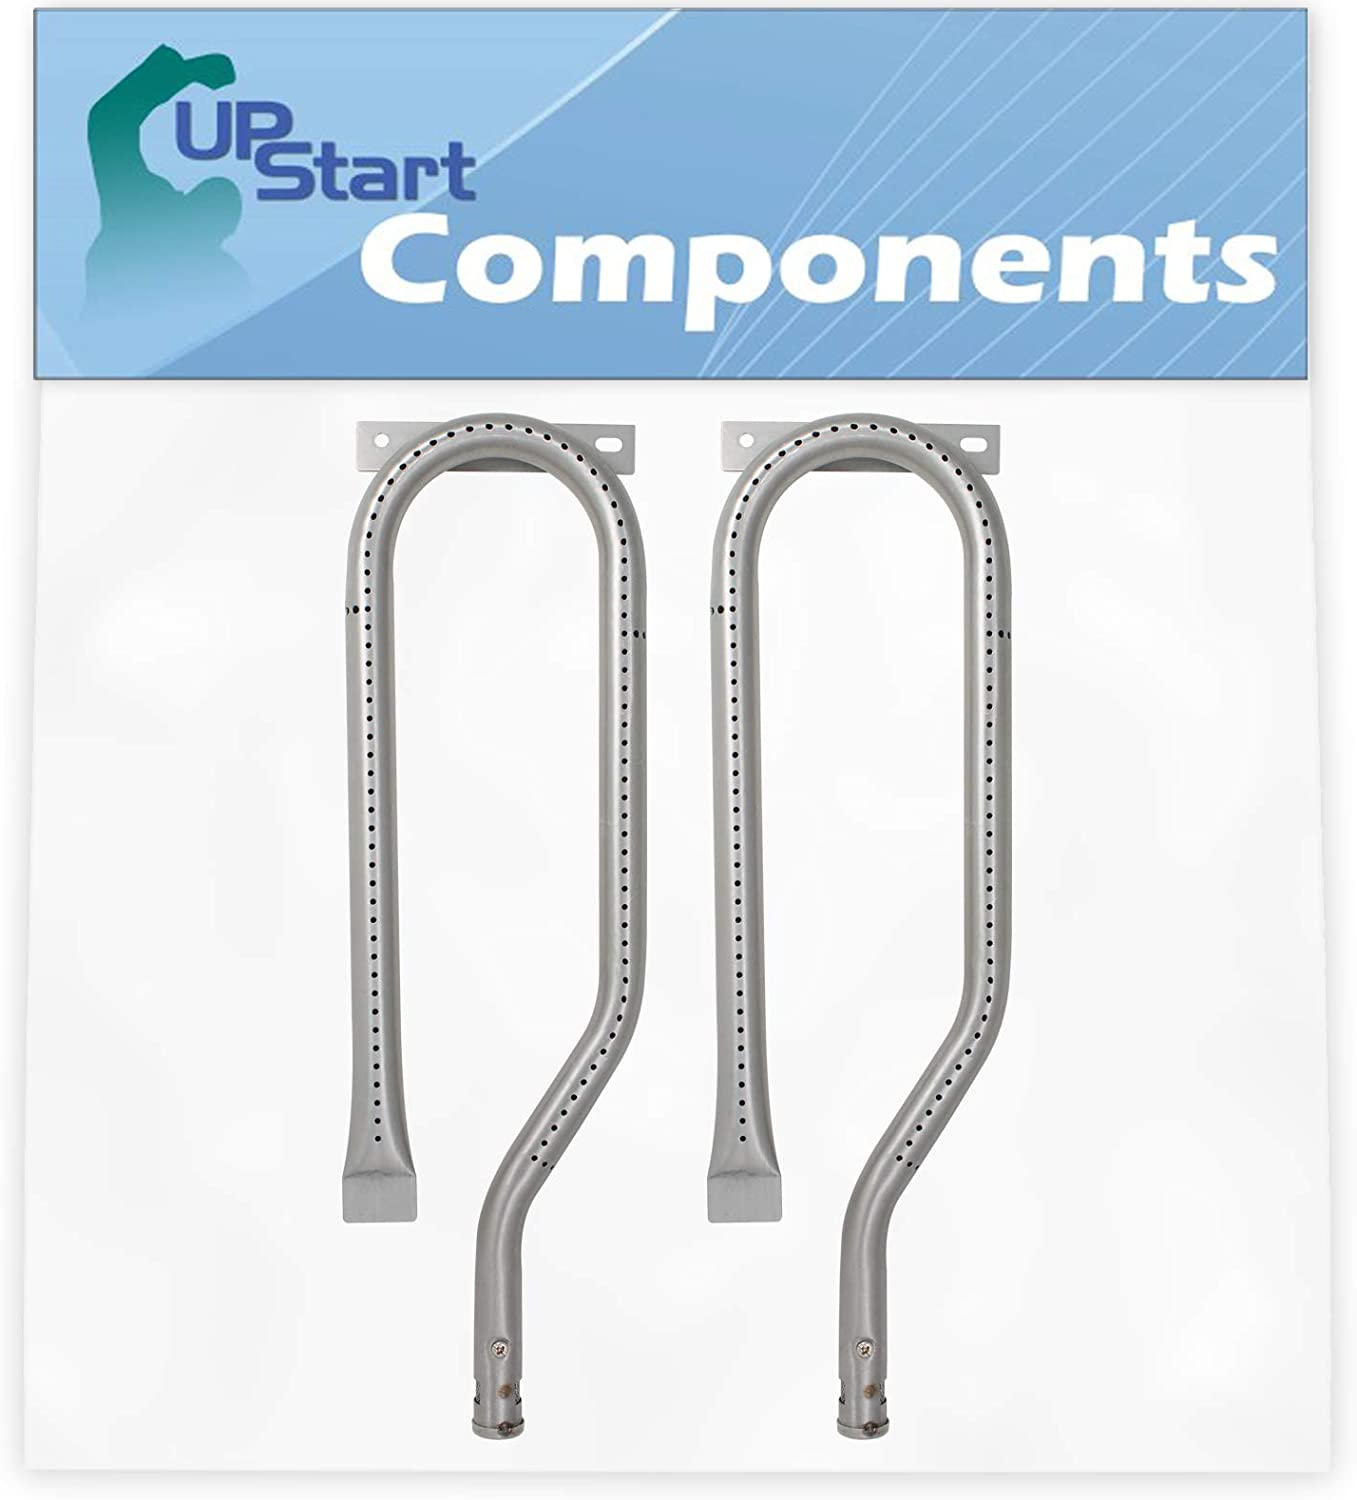 UpStart Components 2-Pack BBQ Tucson At the price Mall Gas Replacement Grill Tube Burner